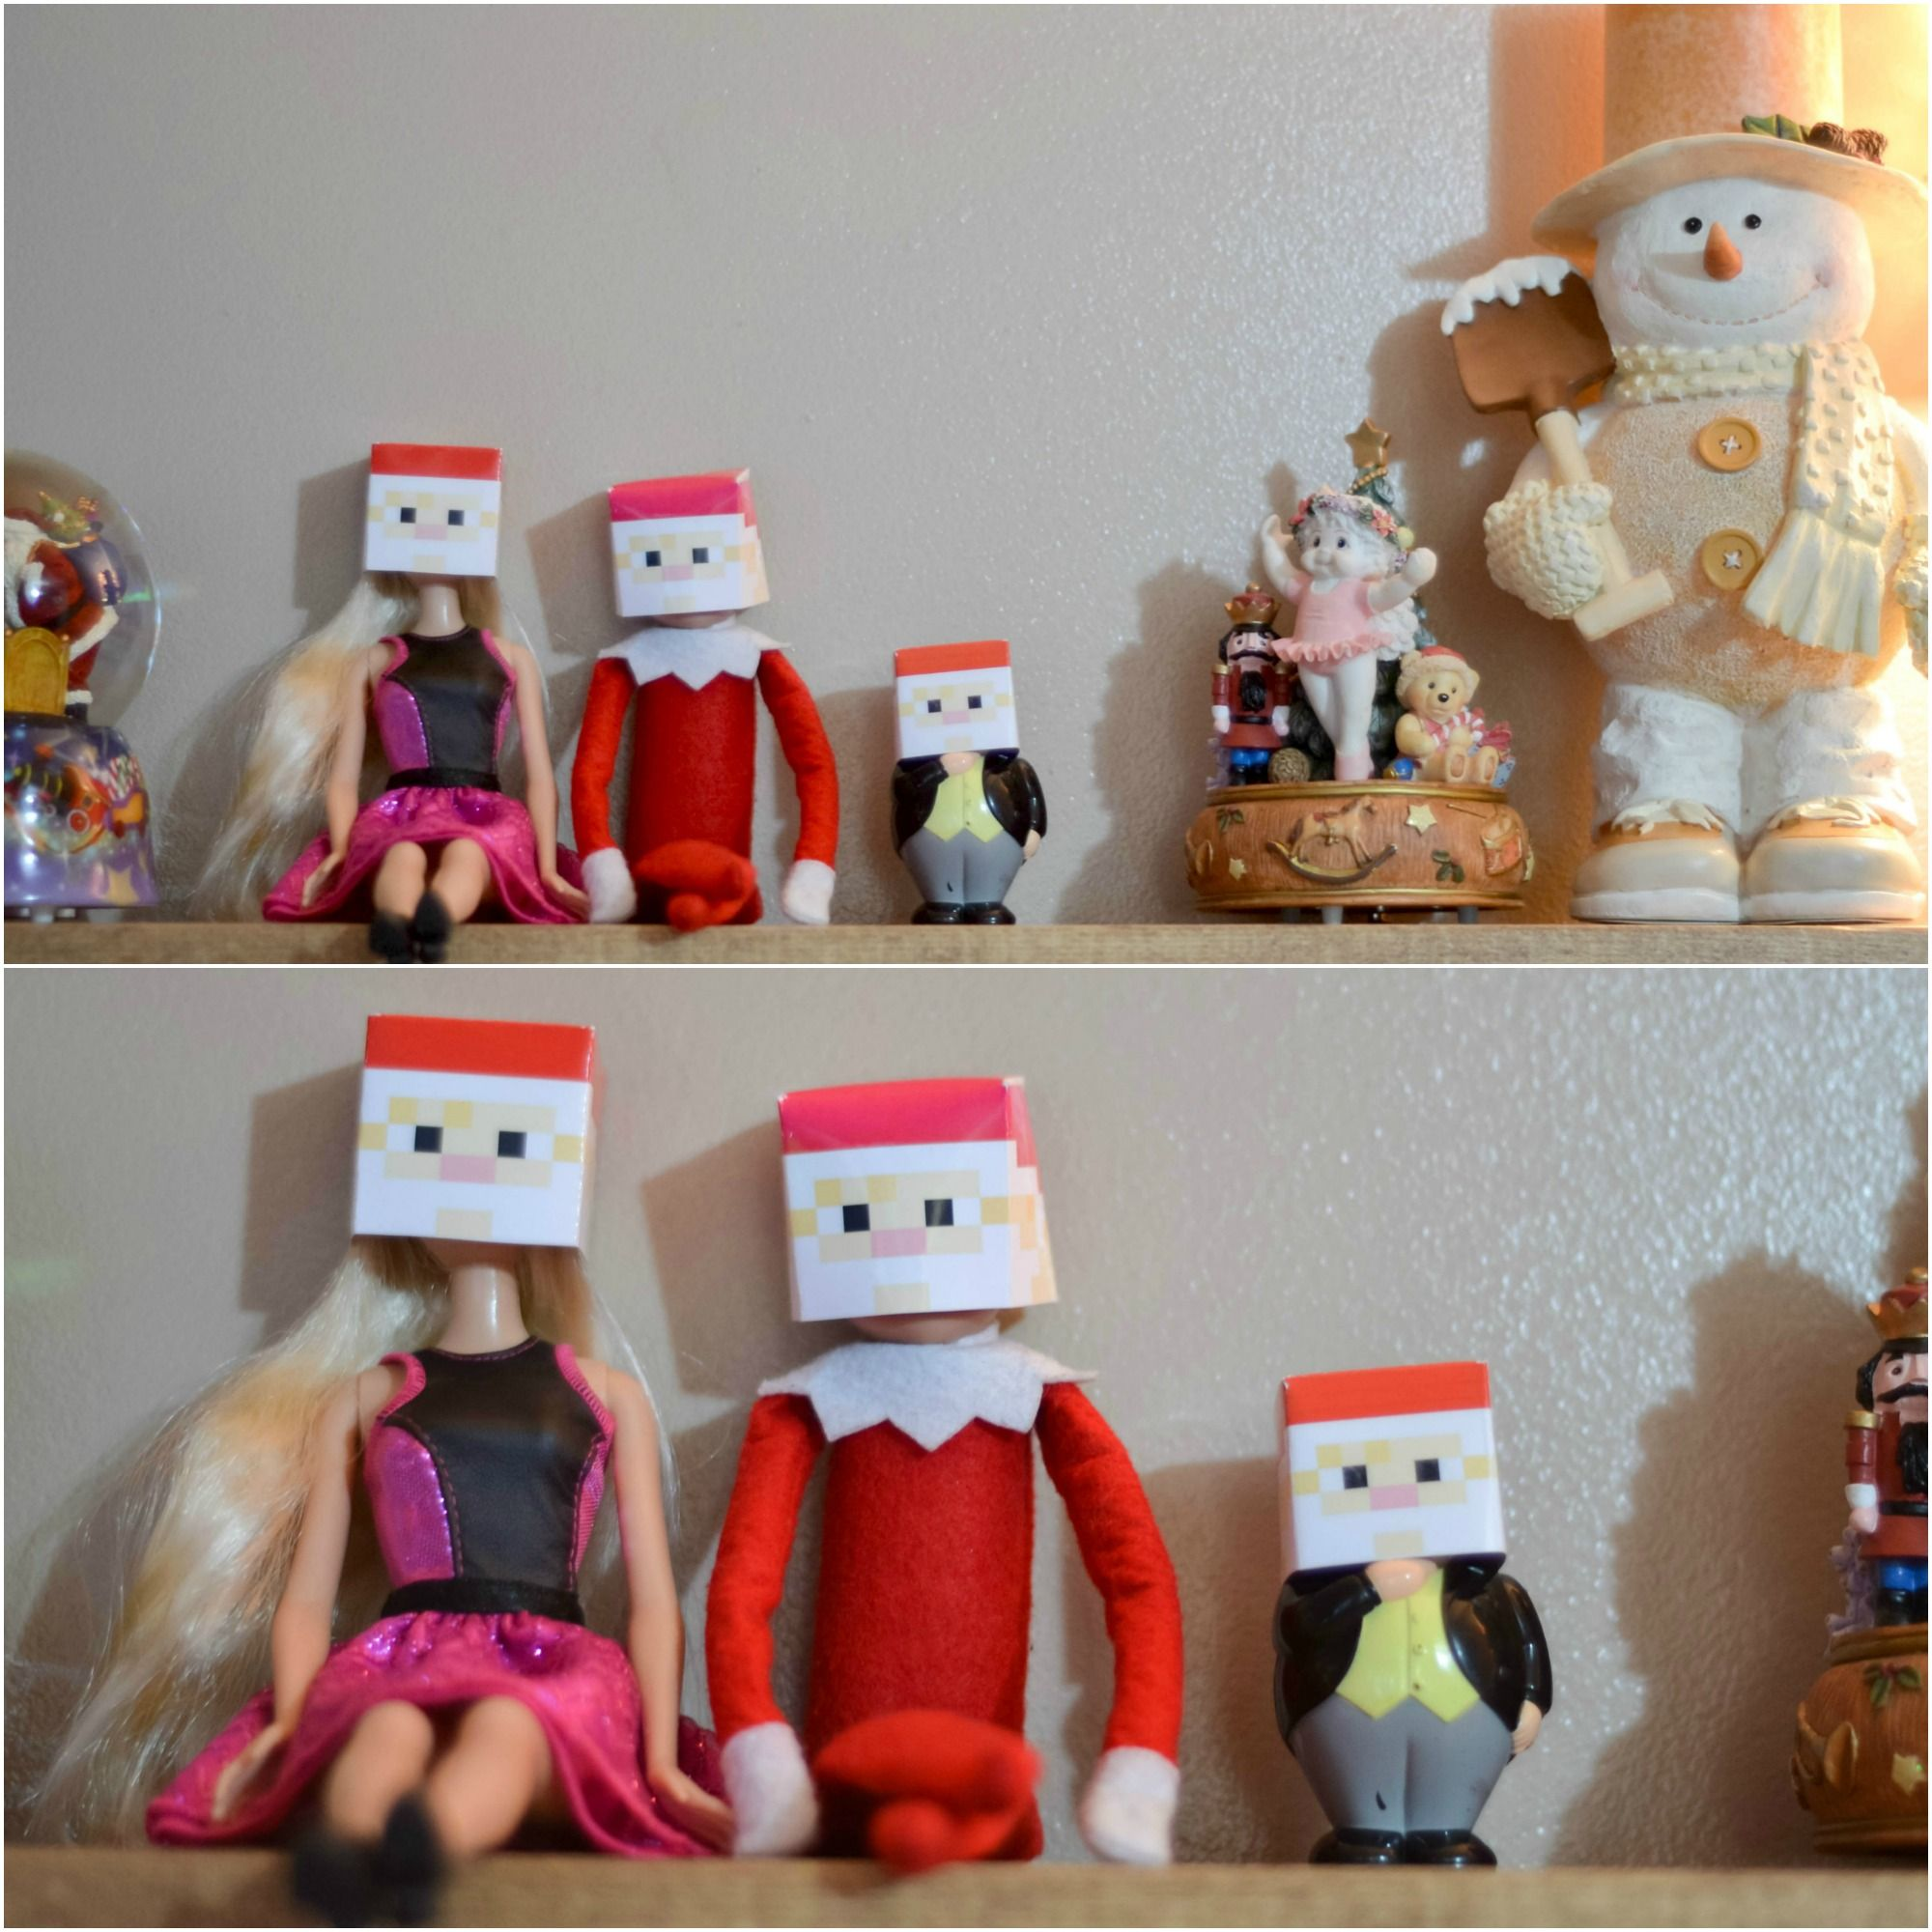 December 15, 2014 ~ Pauly recruited Sir Topham Hatt and Barbie for some Santa Minecraft antics this morning! link: http://www.alittlemooreblog.com/